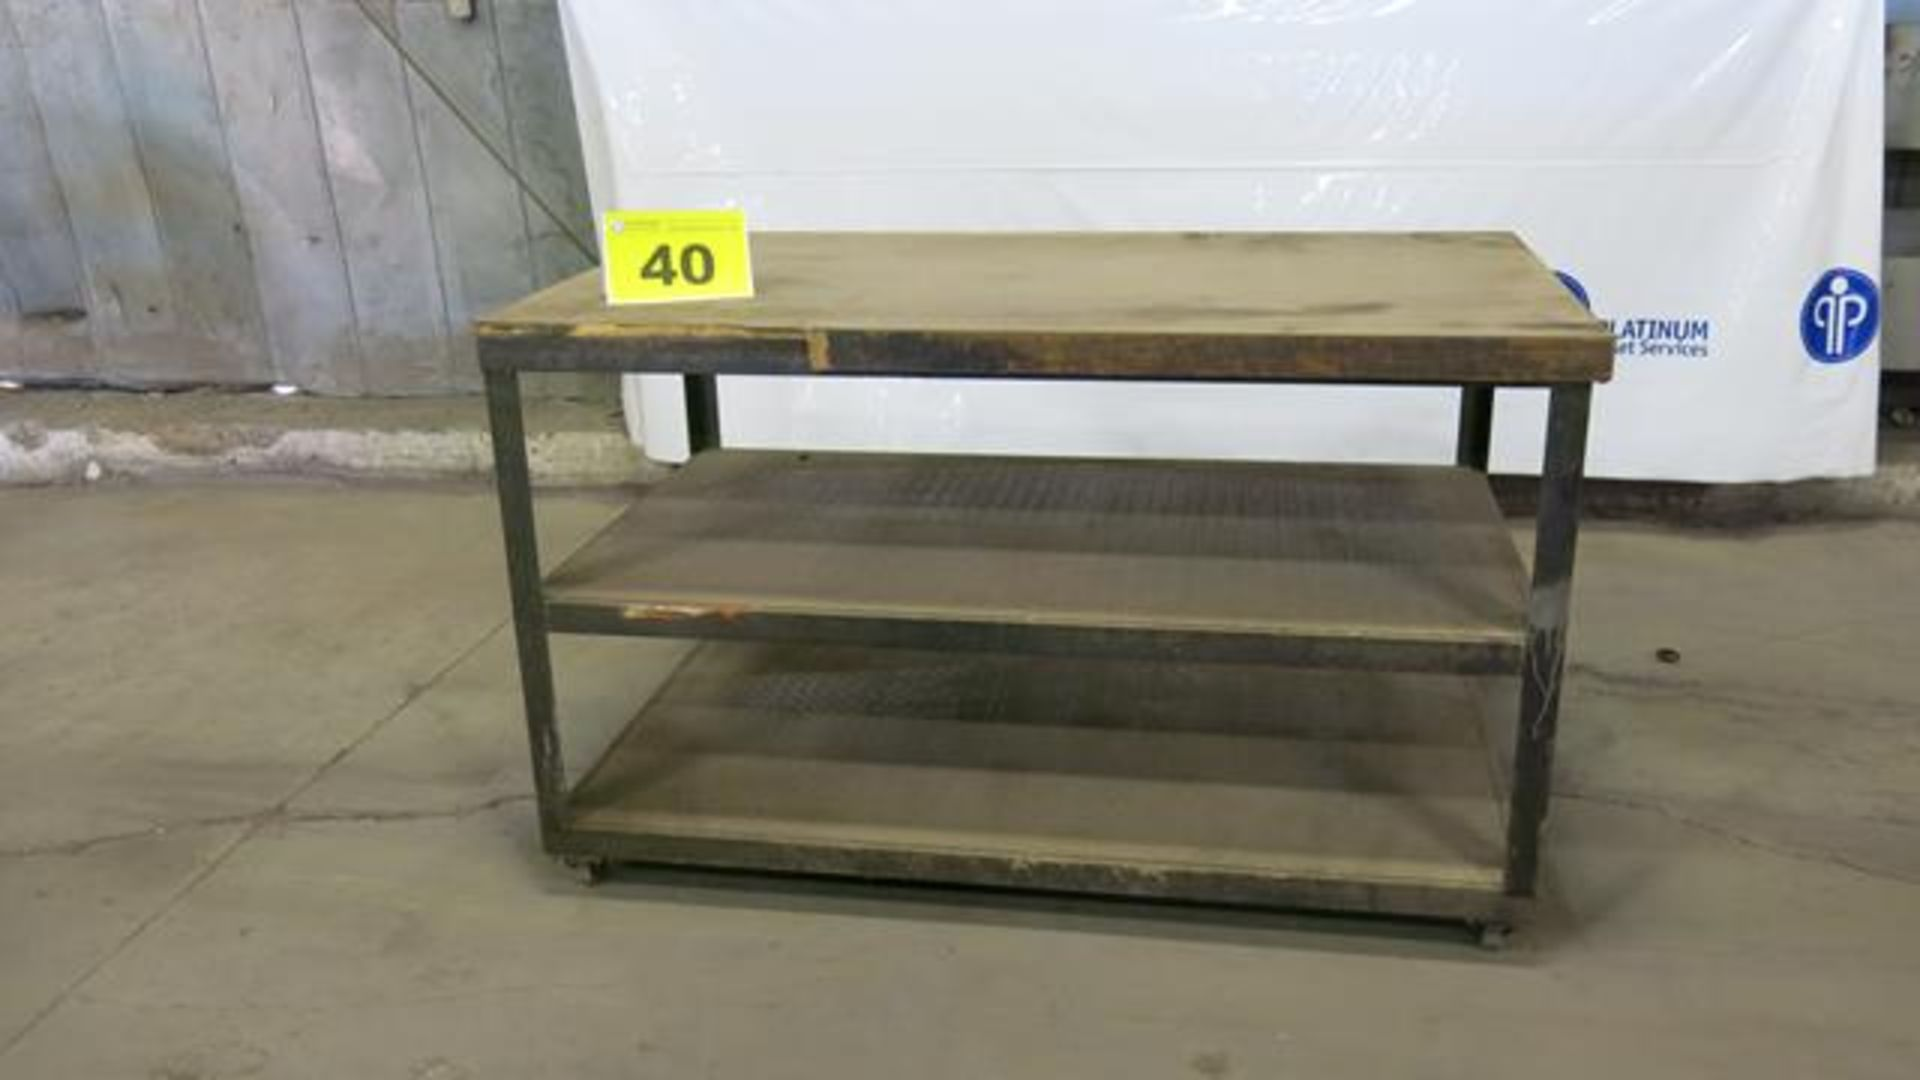 Lot 40 - STEEL, ROLLING WORK BENCH WITH WOODEN TOP, 5' X 3' X 3', 200 LBS.